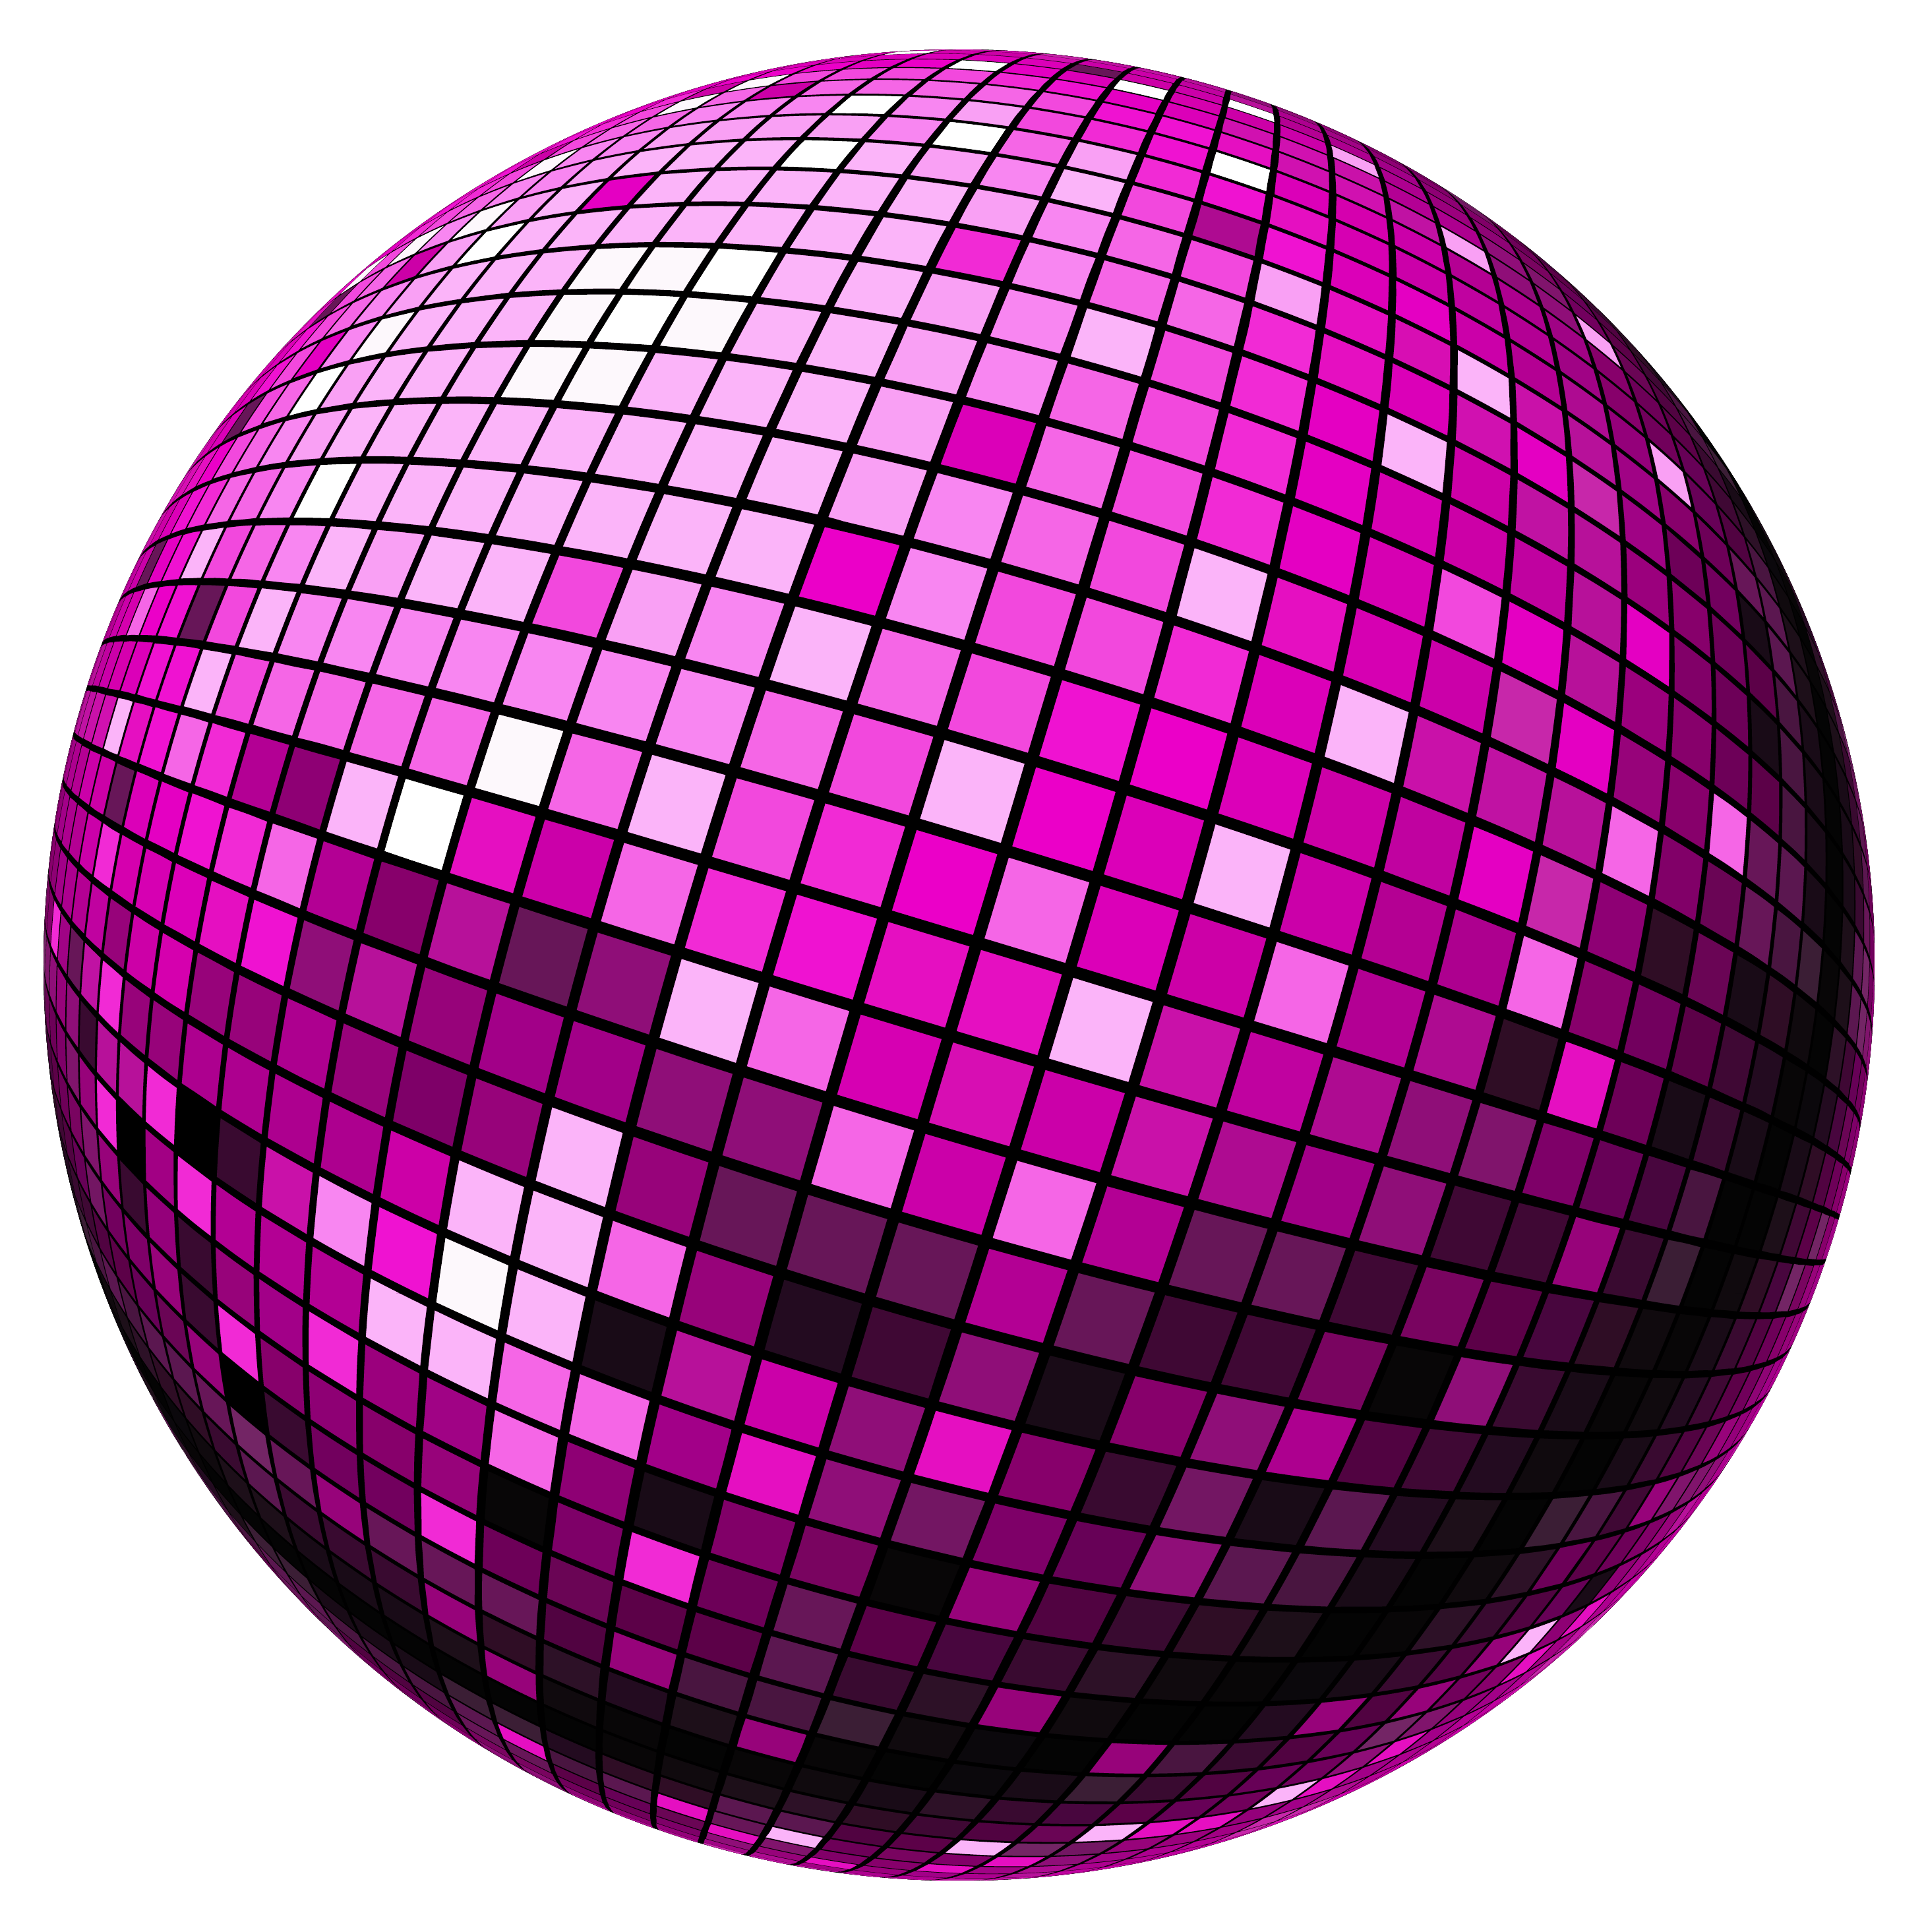 Disco Ball clipart #7, Download drawings